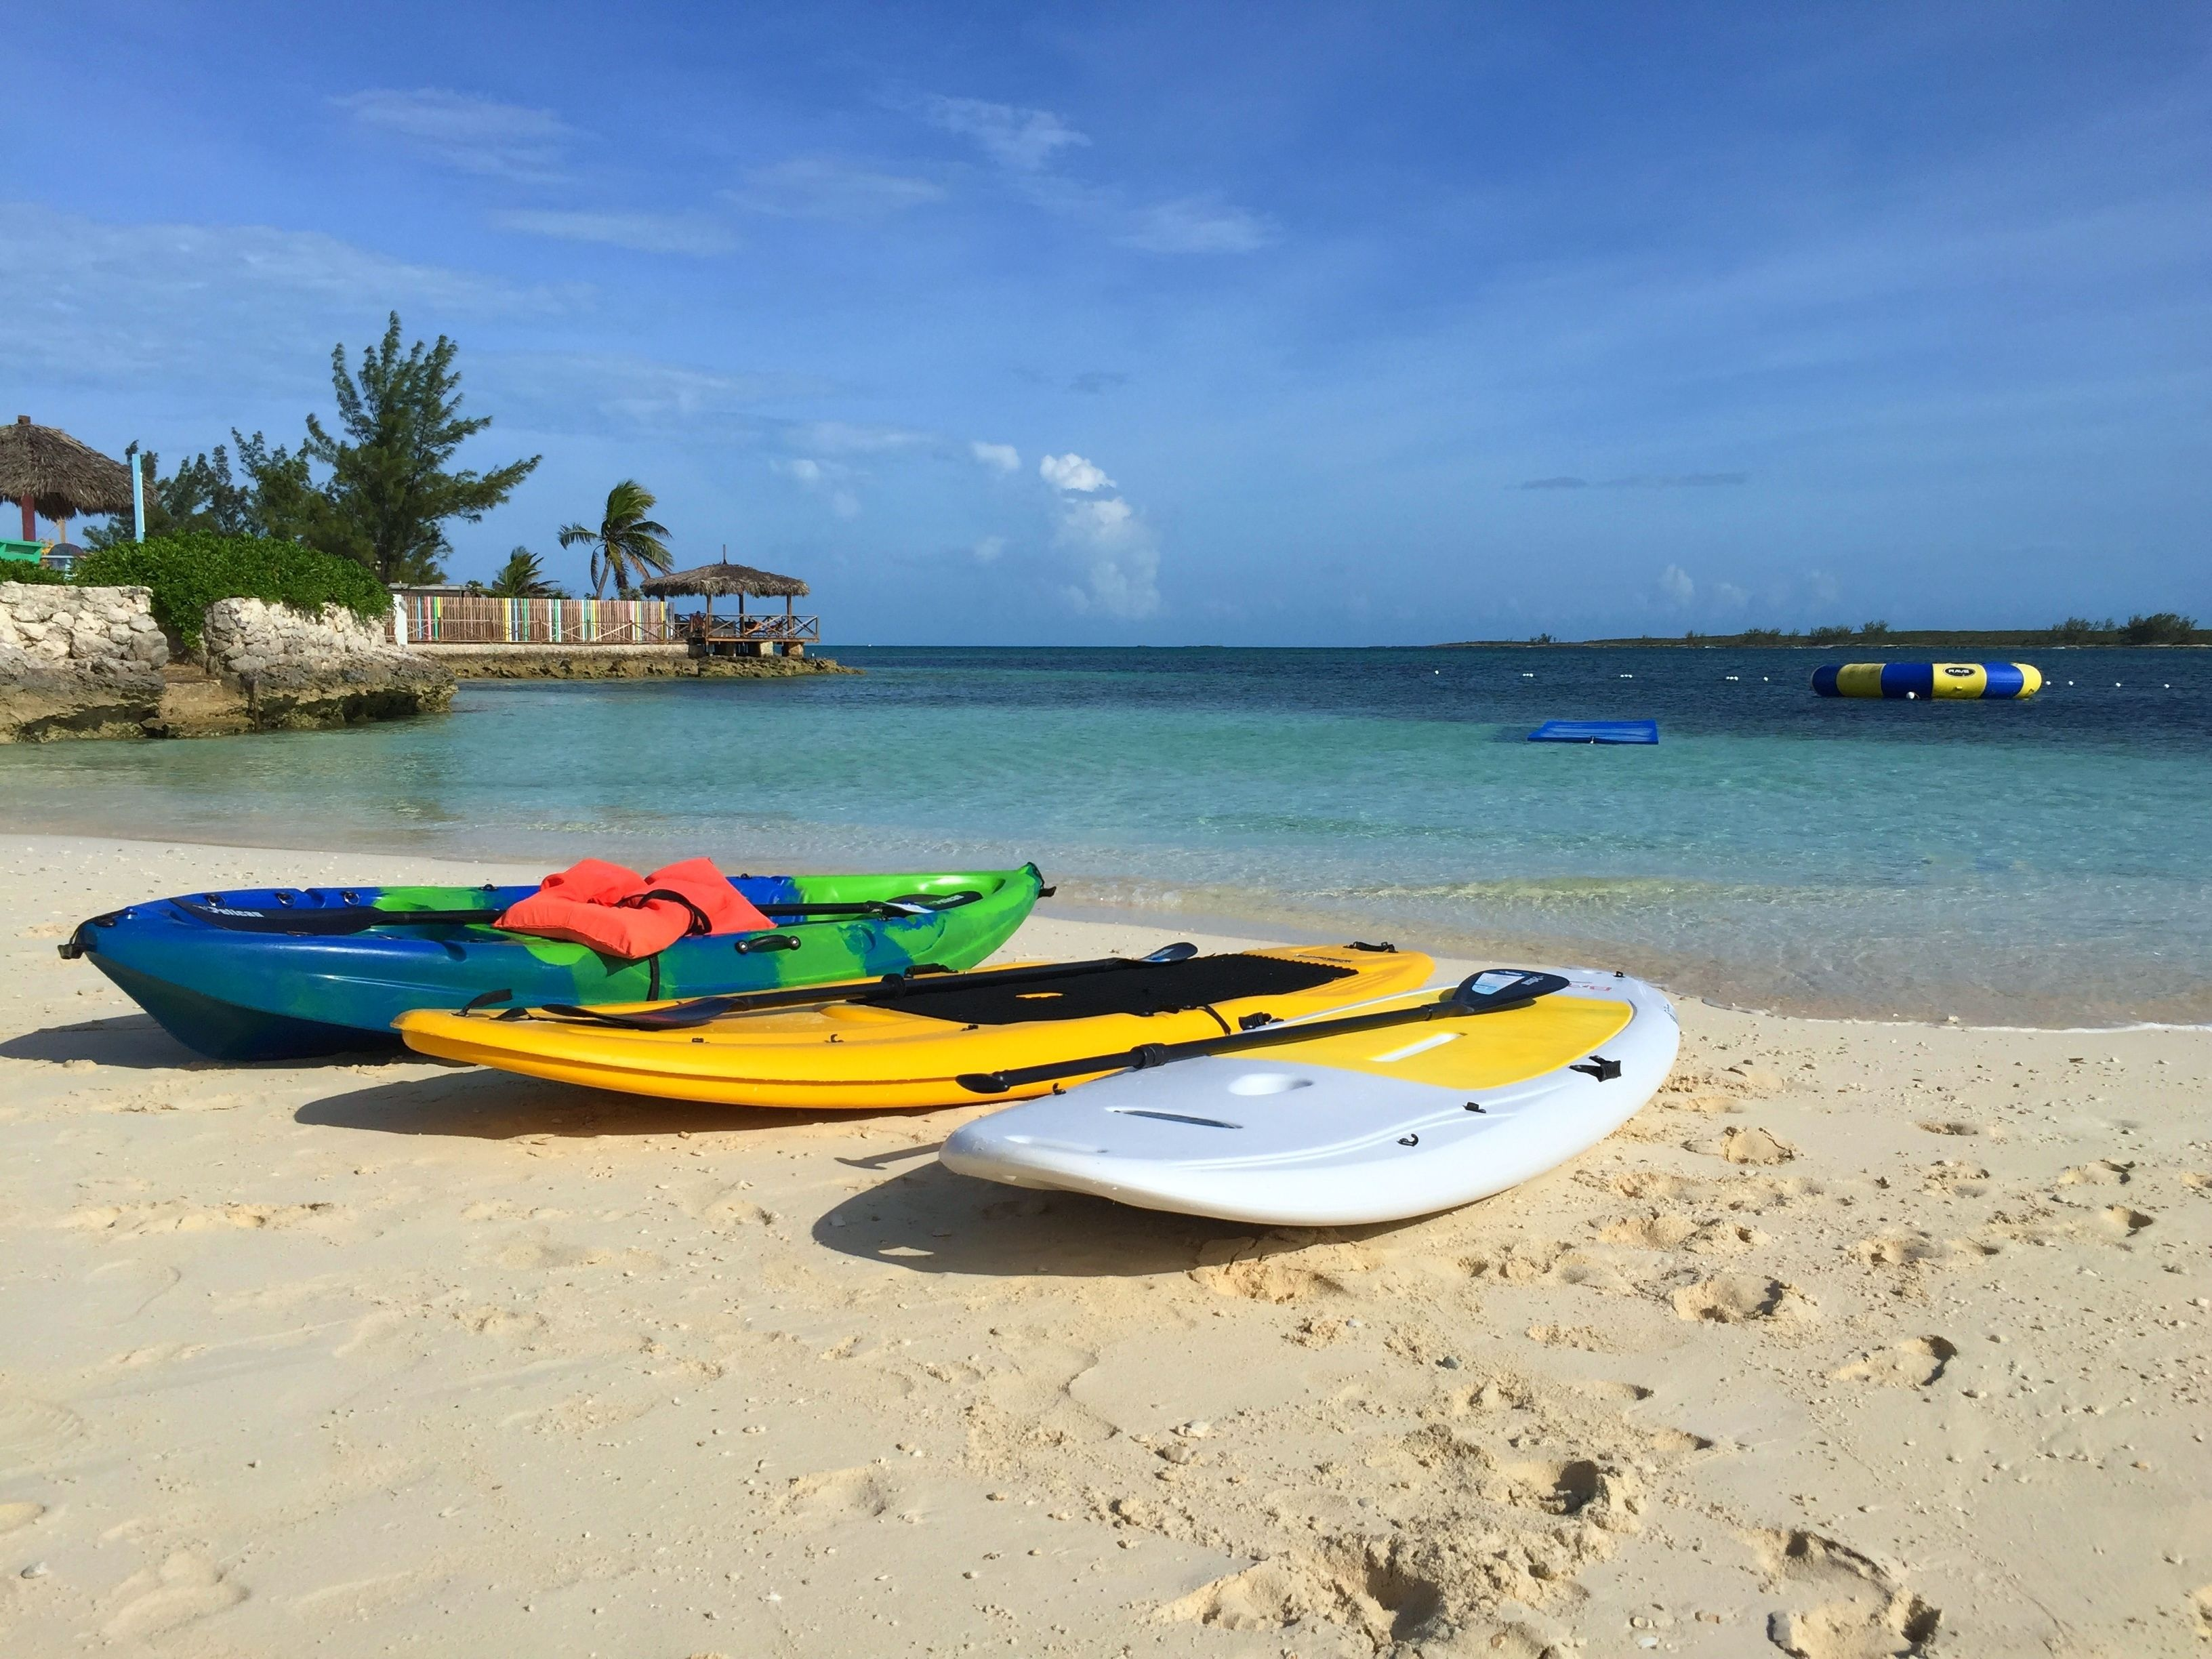 Kayaks on the beach on Pearl Island in Bahamas